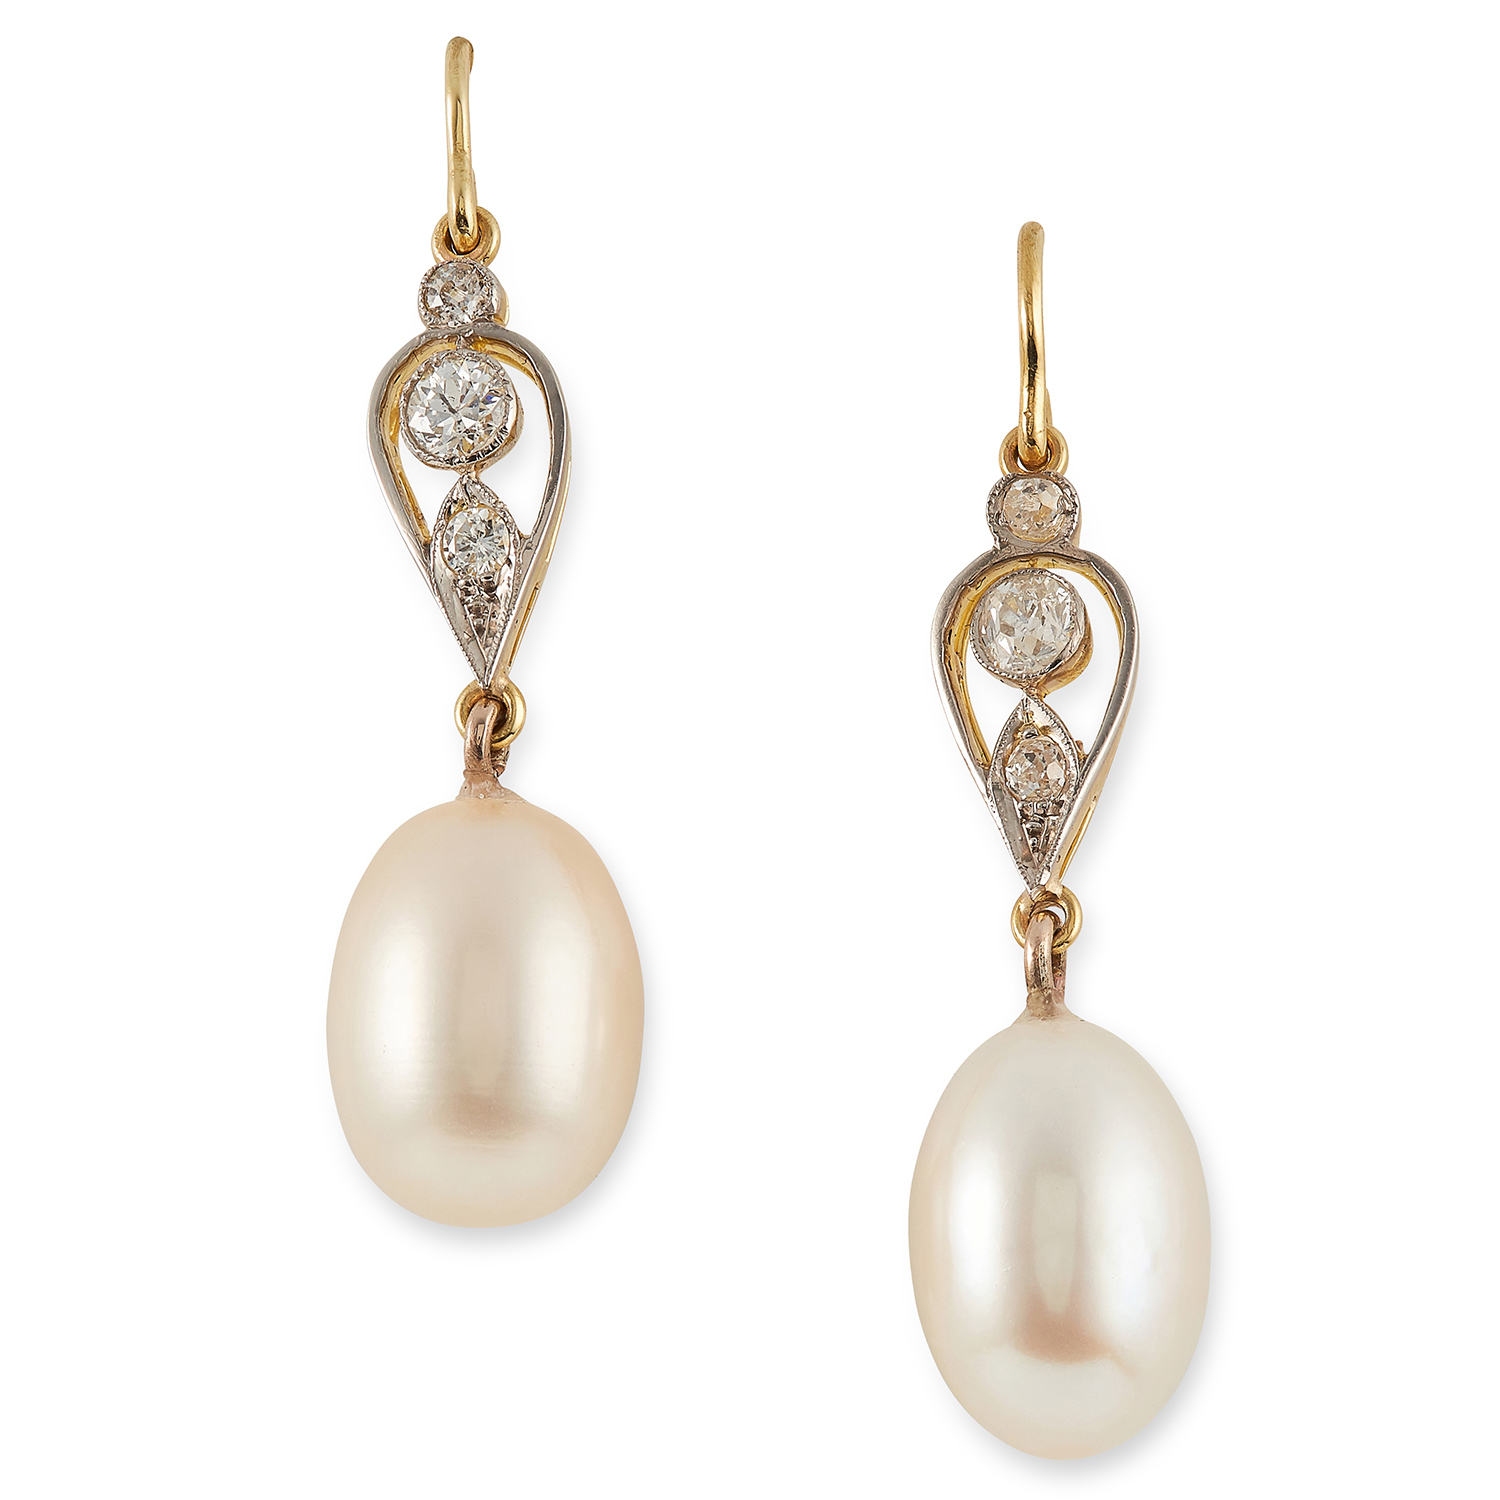 Los 22 - PEARL AND DIAMOND EARRINGS set with round cut diamonds and pearls, 4cm, 6g.